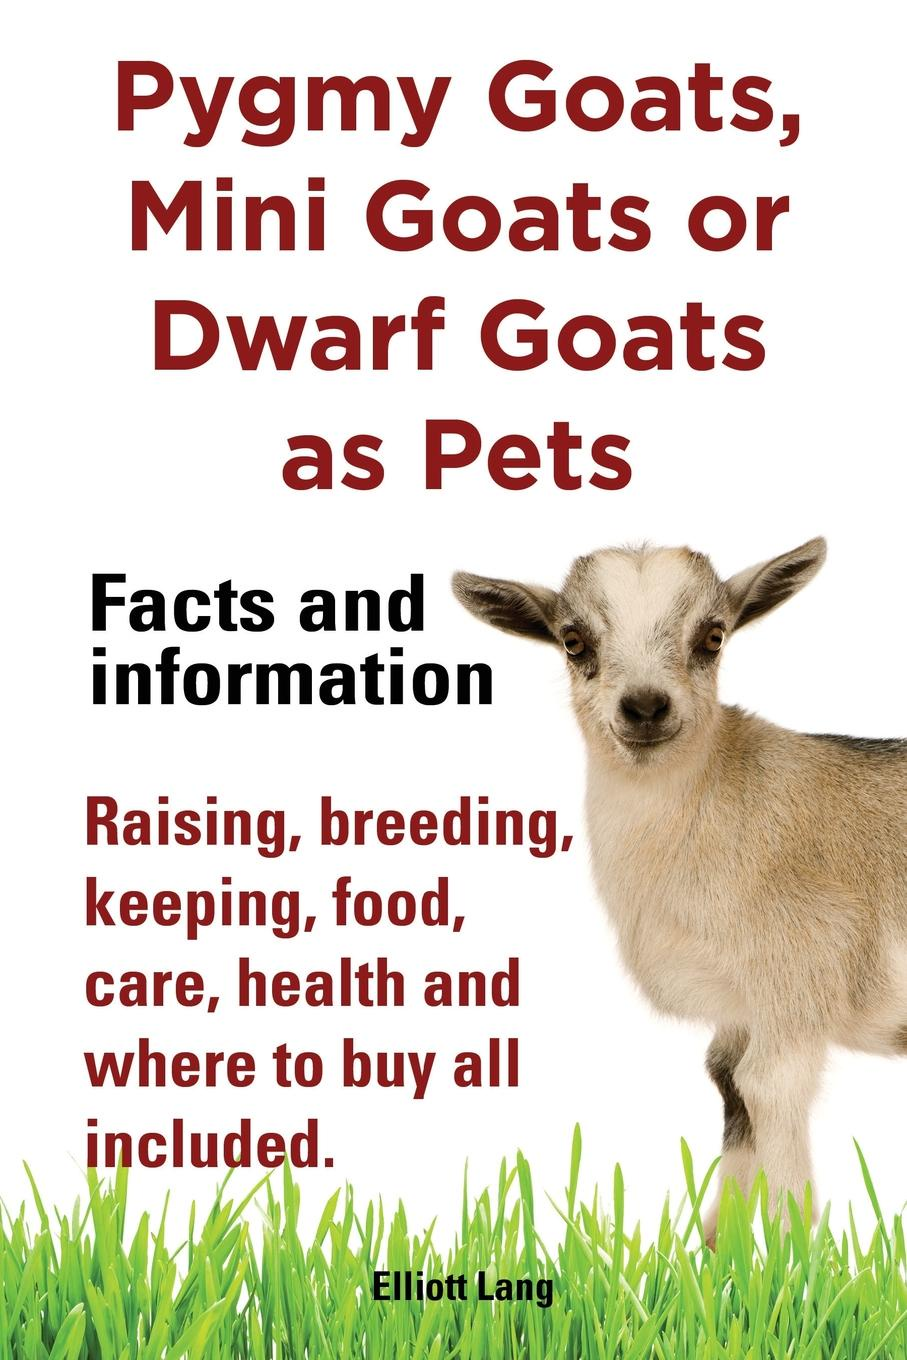 Elliott Lang Pygmy Goats as Pets. Pygmy Goats, Mini Goats or Dwarf Goats. Facts and Information. Raising, Breeding, Keeping, Milking, Food, Care, Health and Where smith cheryl k raising goats for dummies